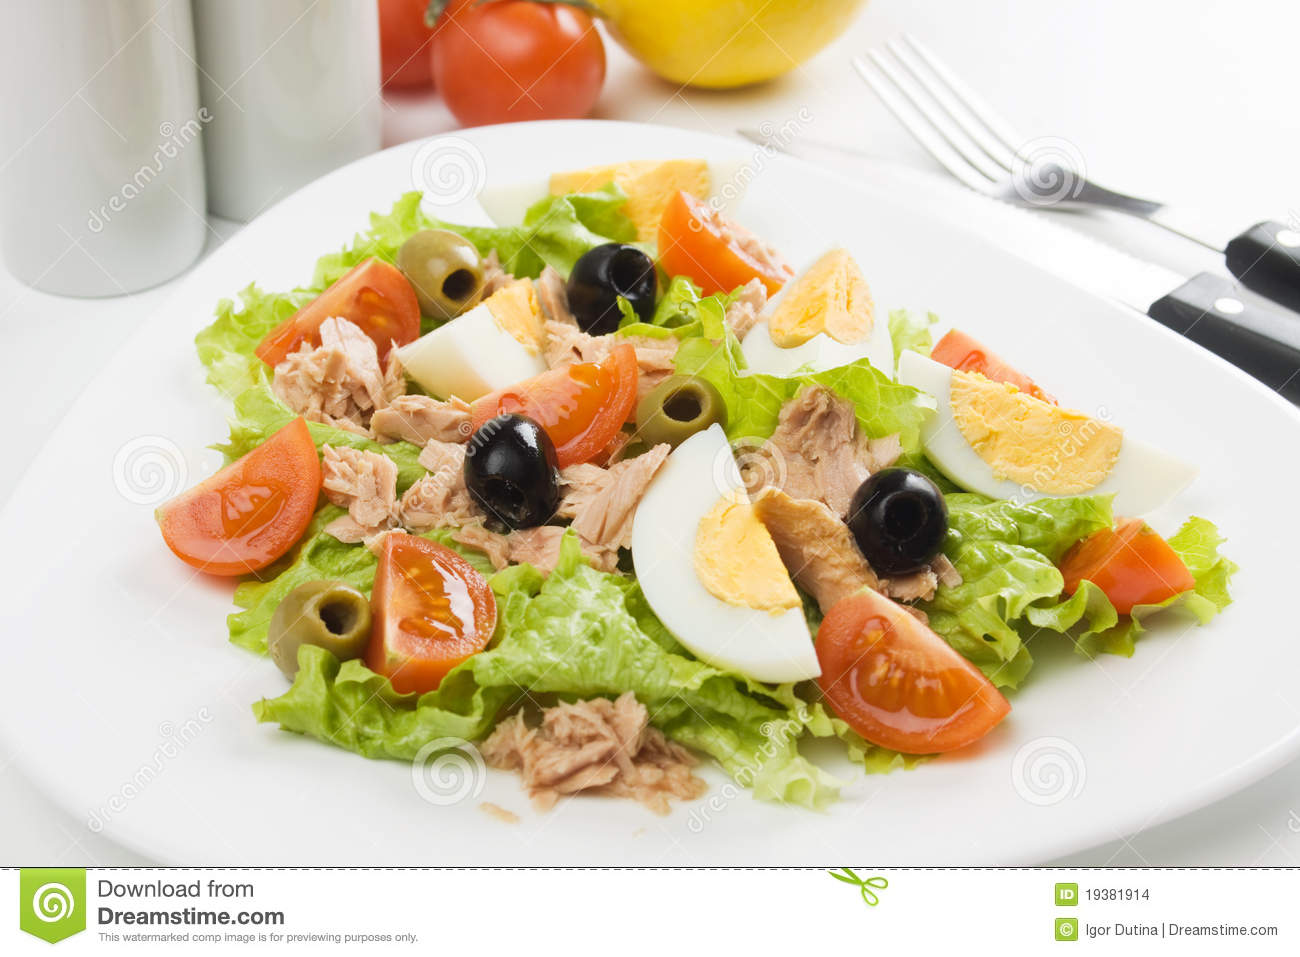 Egg salad with tuna meat, cherry tomato, olives and lettuce.